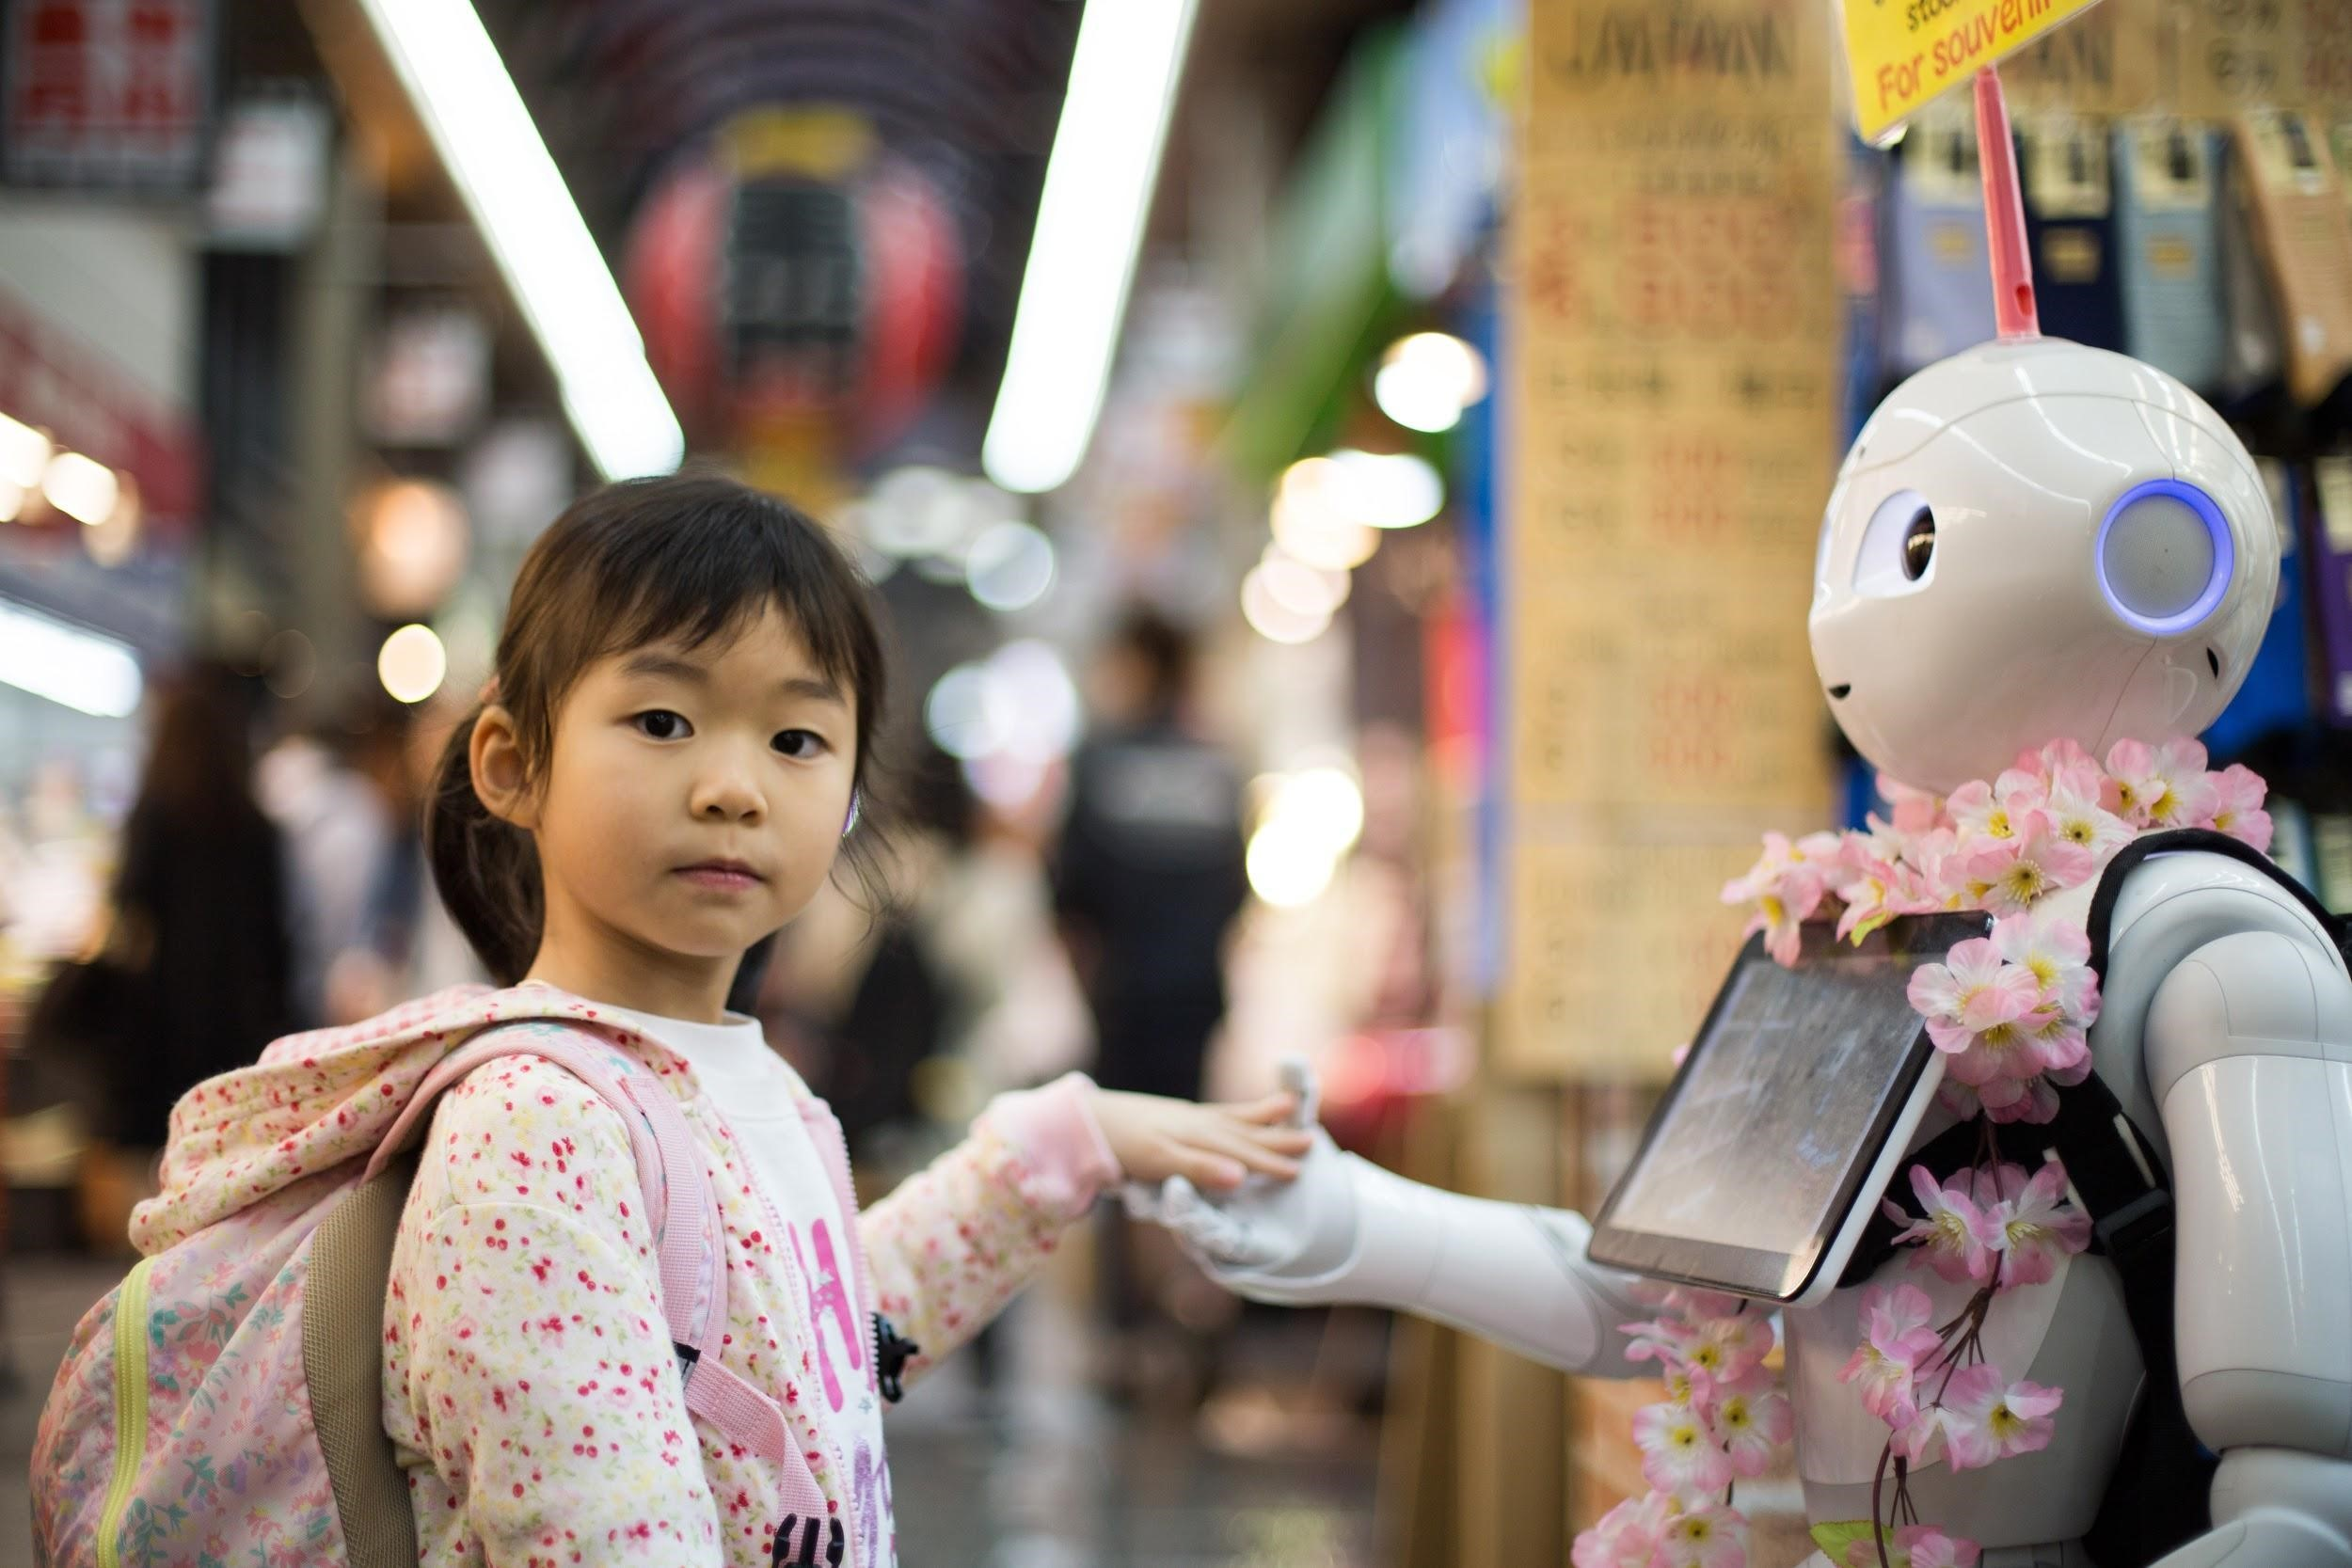 Japan's Obsession with Robots and Automation